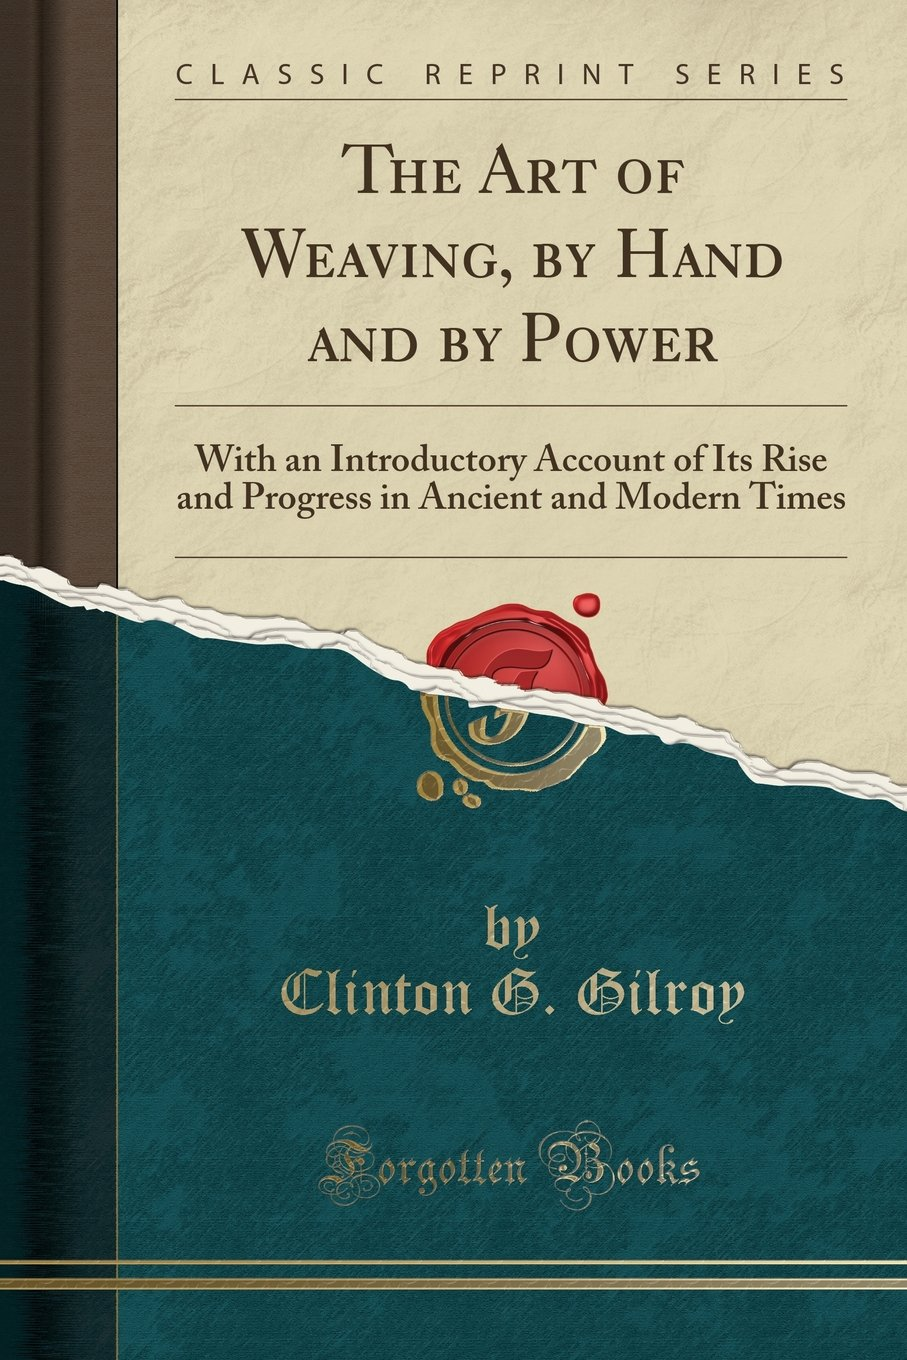 Download The Art of Weaving, by Hand and by Power: With an Introductory Account of Its Rise and Progress in Ancient and Modern Times (Classic Reprint) PDF